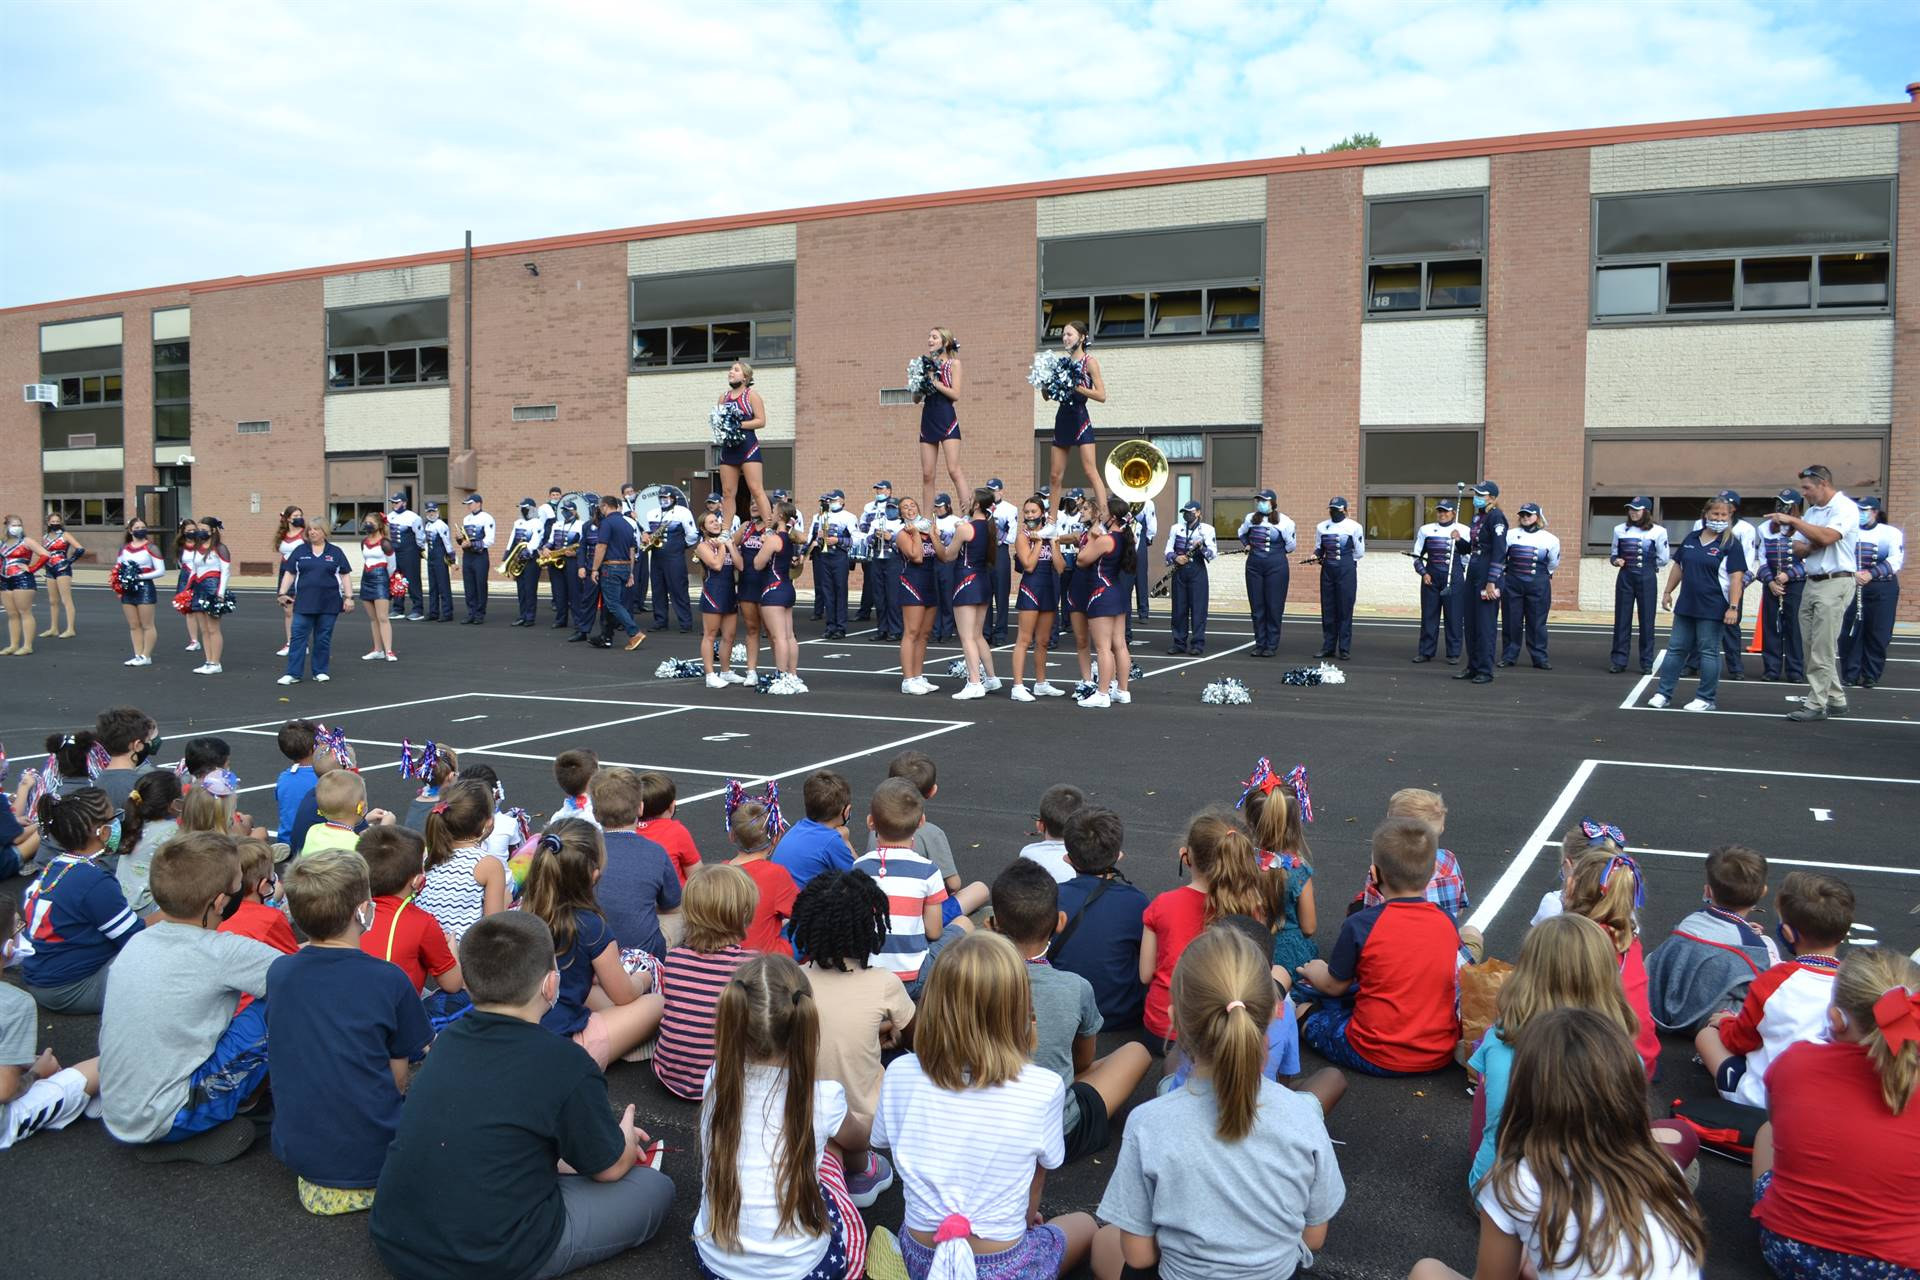 Cheerleaders cheering as students watch during Pep Rally Day